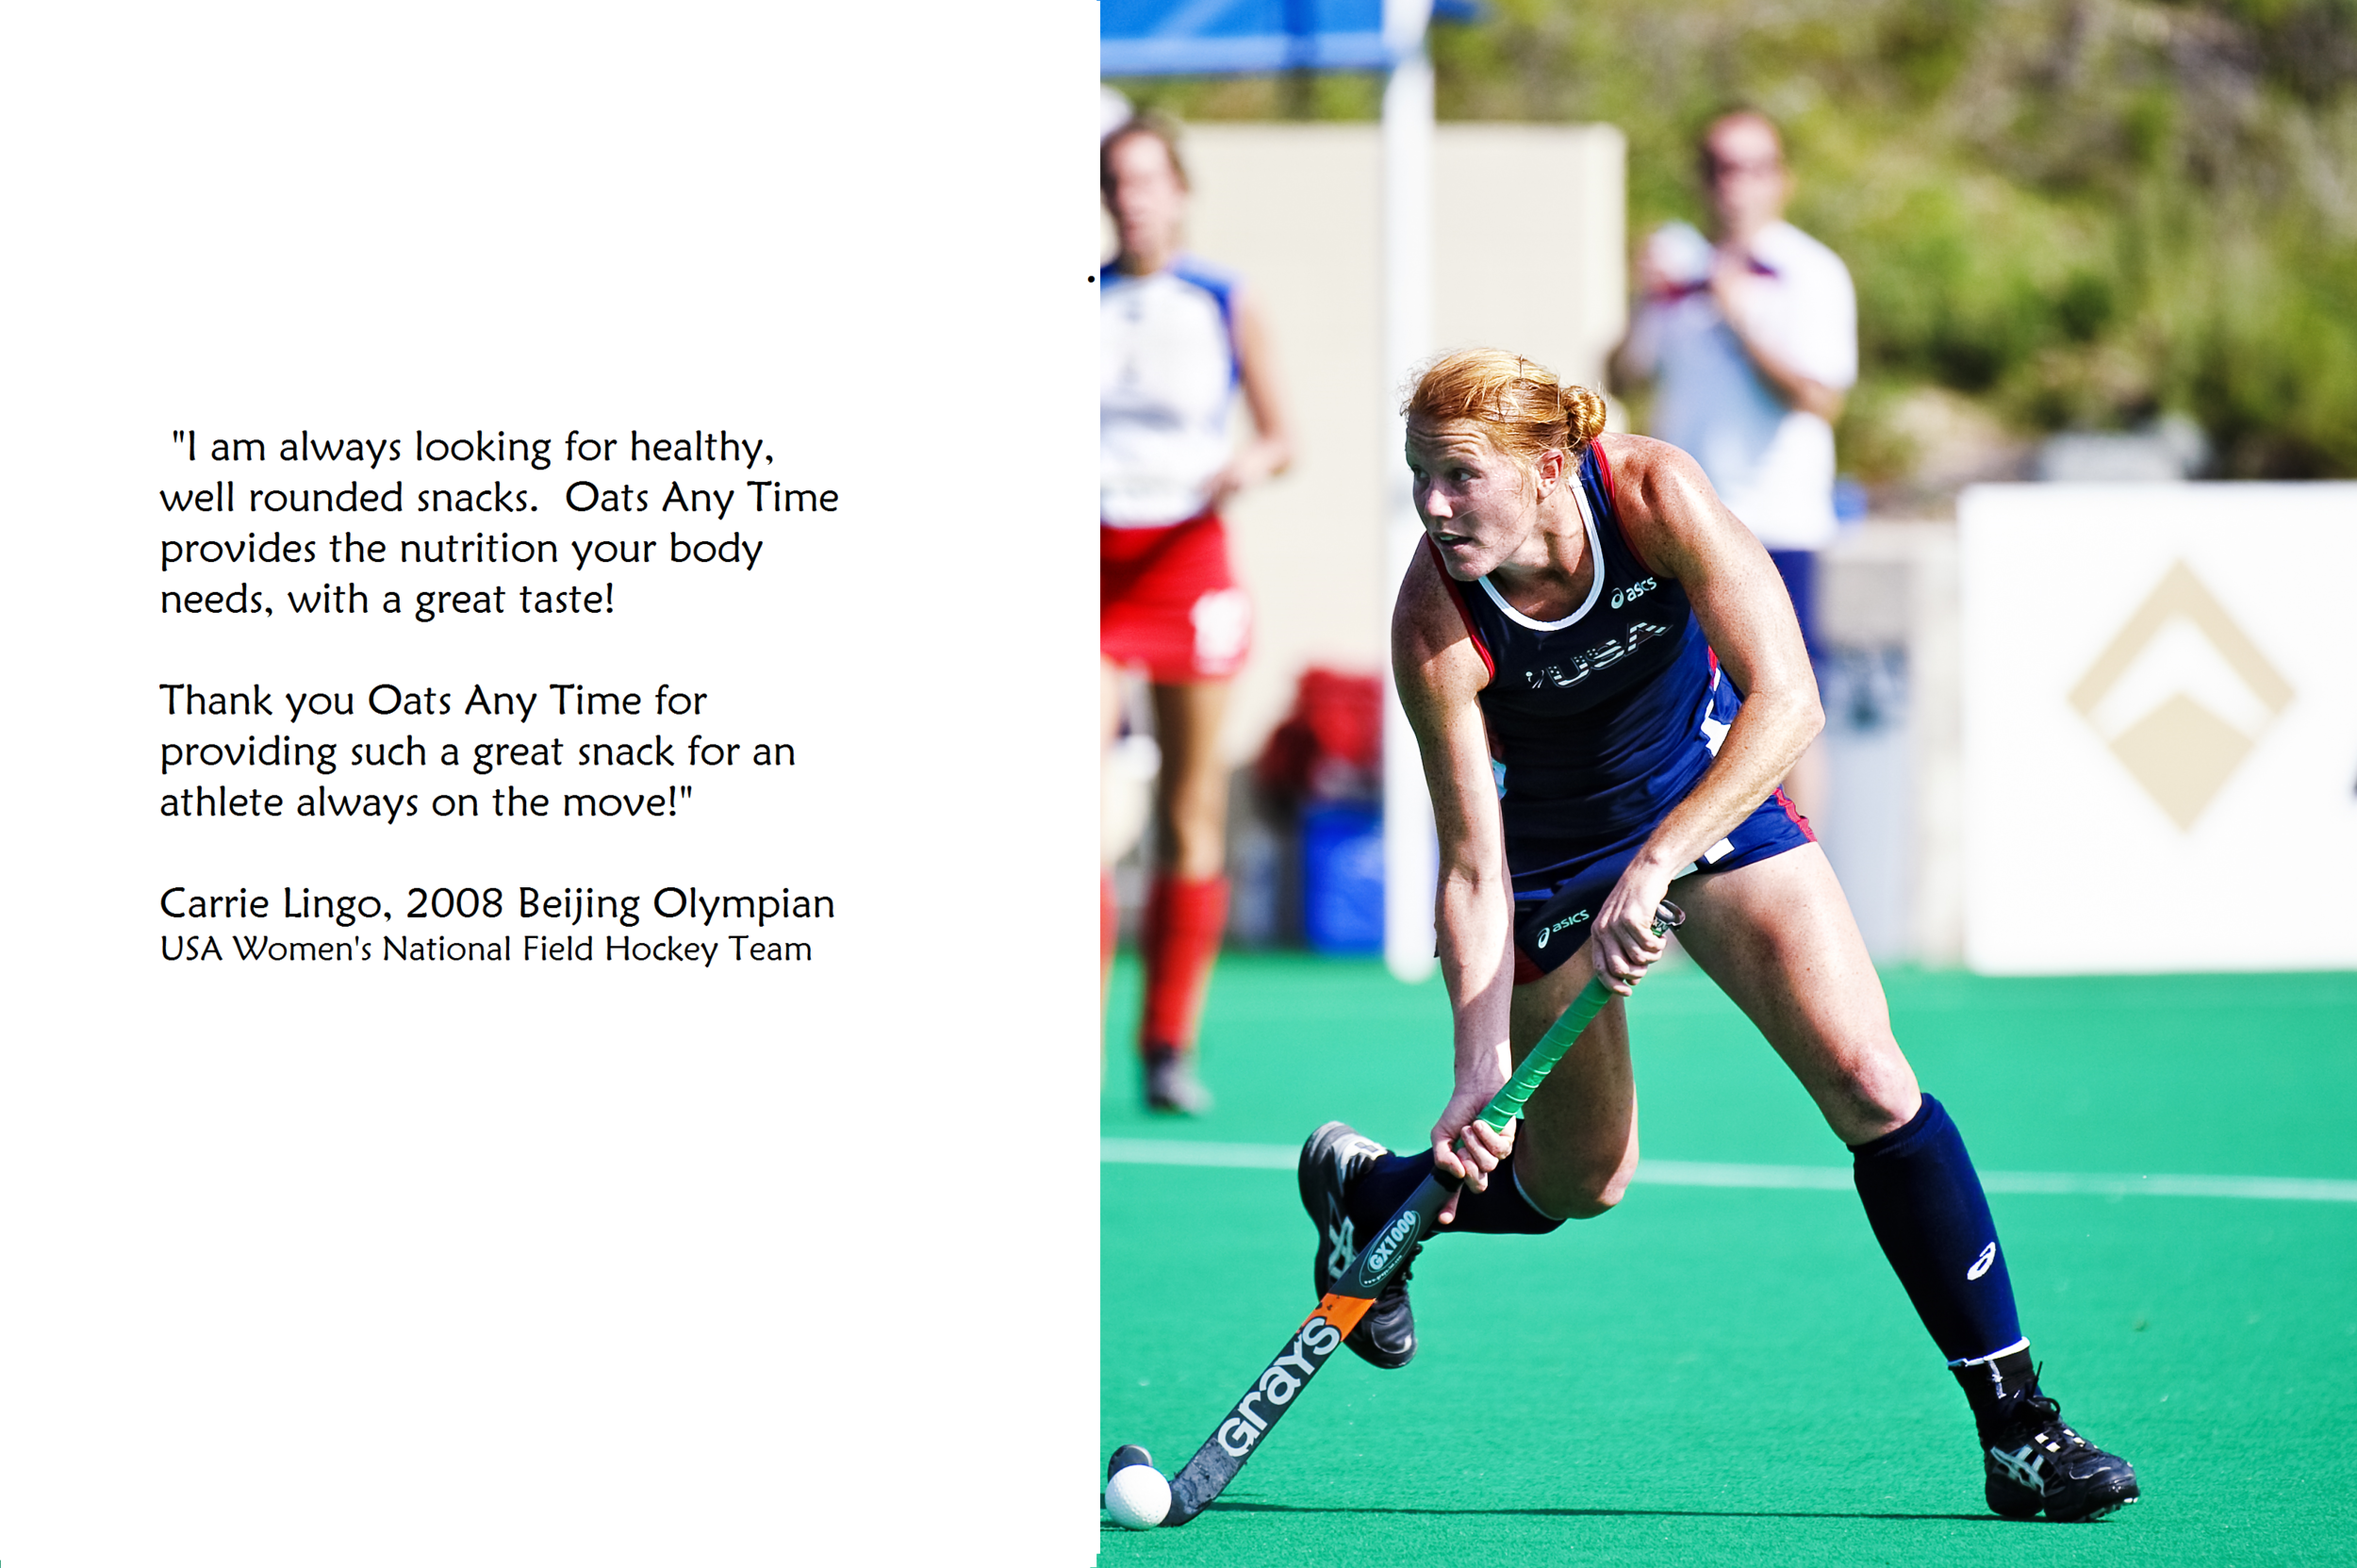 Carrie Lingo, 2008 Beijing Olympics USA Women's National Field Hockey Team